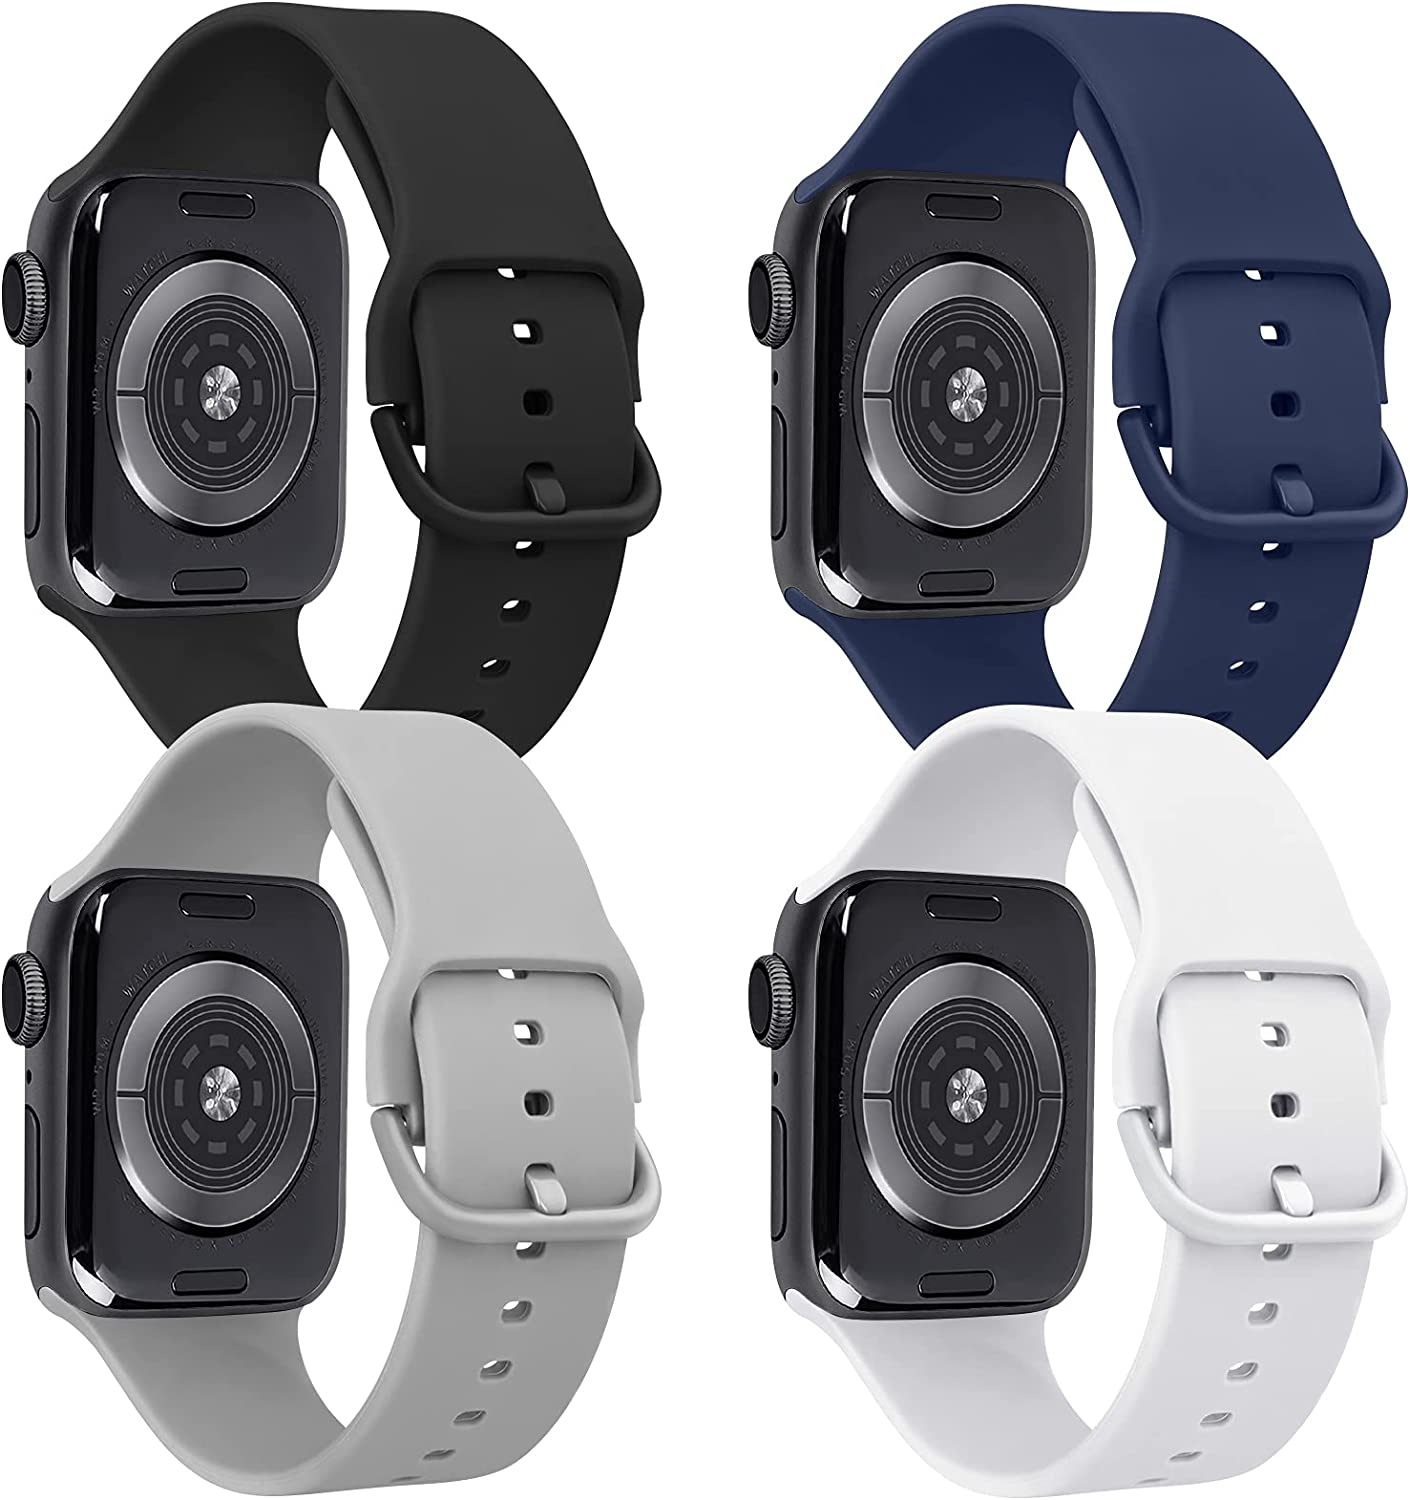 Tobfit 4 Pack Compatible for Apple Watch 38mm 40mm, Soft Sport Watchband Replacements for iWatch Series 6 5 4 3 SE (Black/Gray/White/Navy Blue, 38mm/40mm M/L)